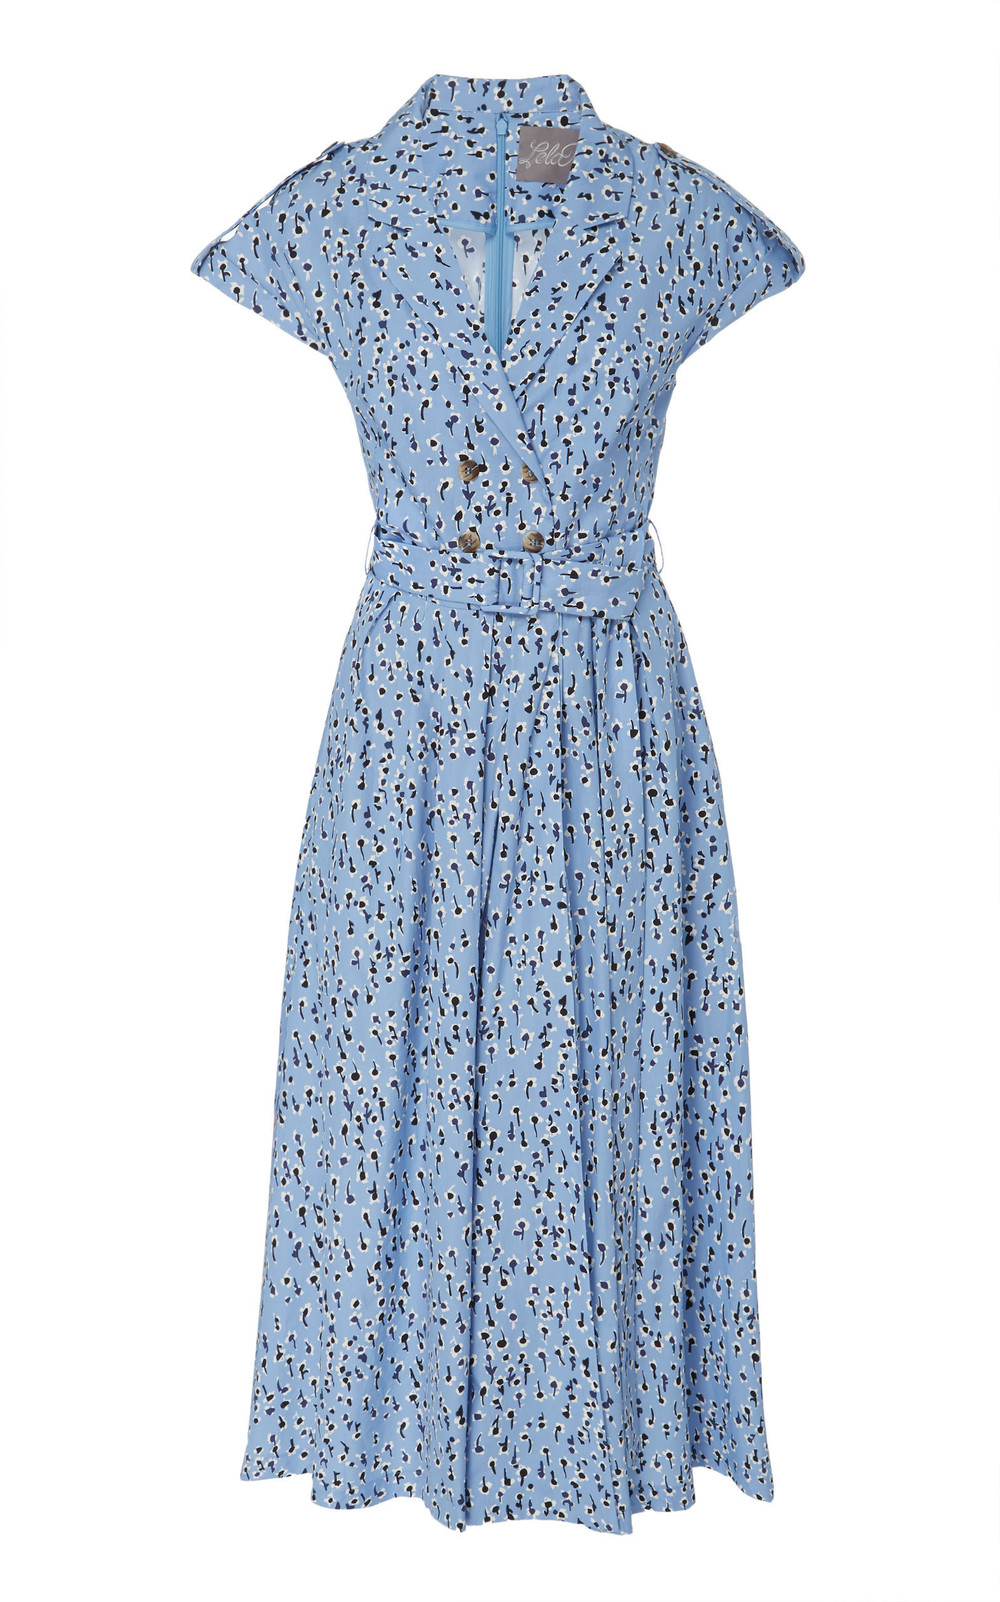 Lela Rose Printed Cotton Midi Dress in blue